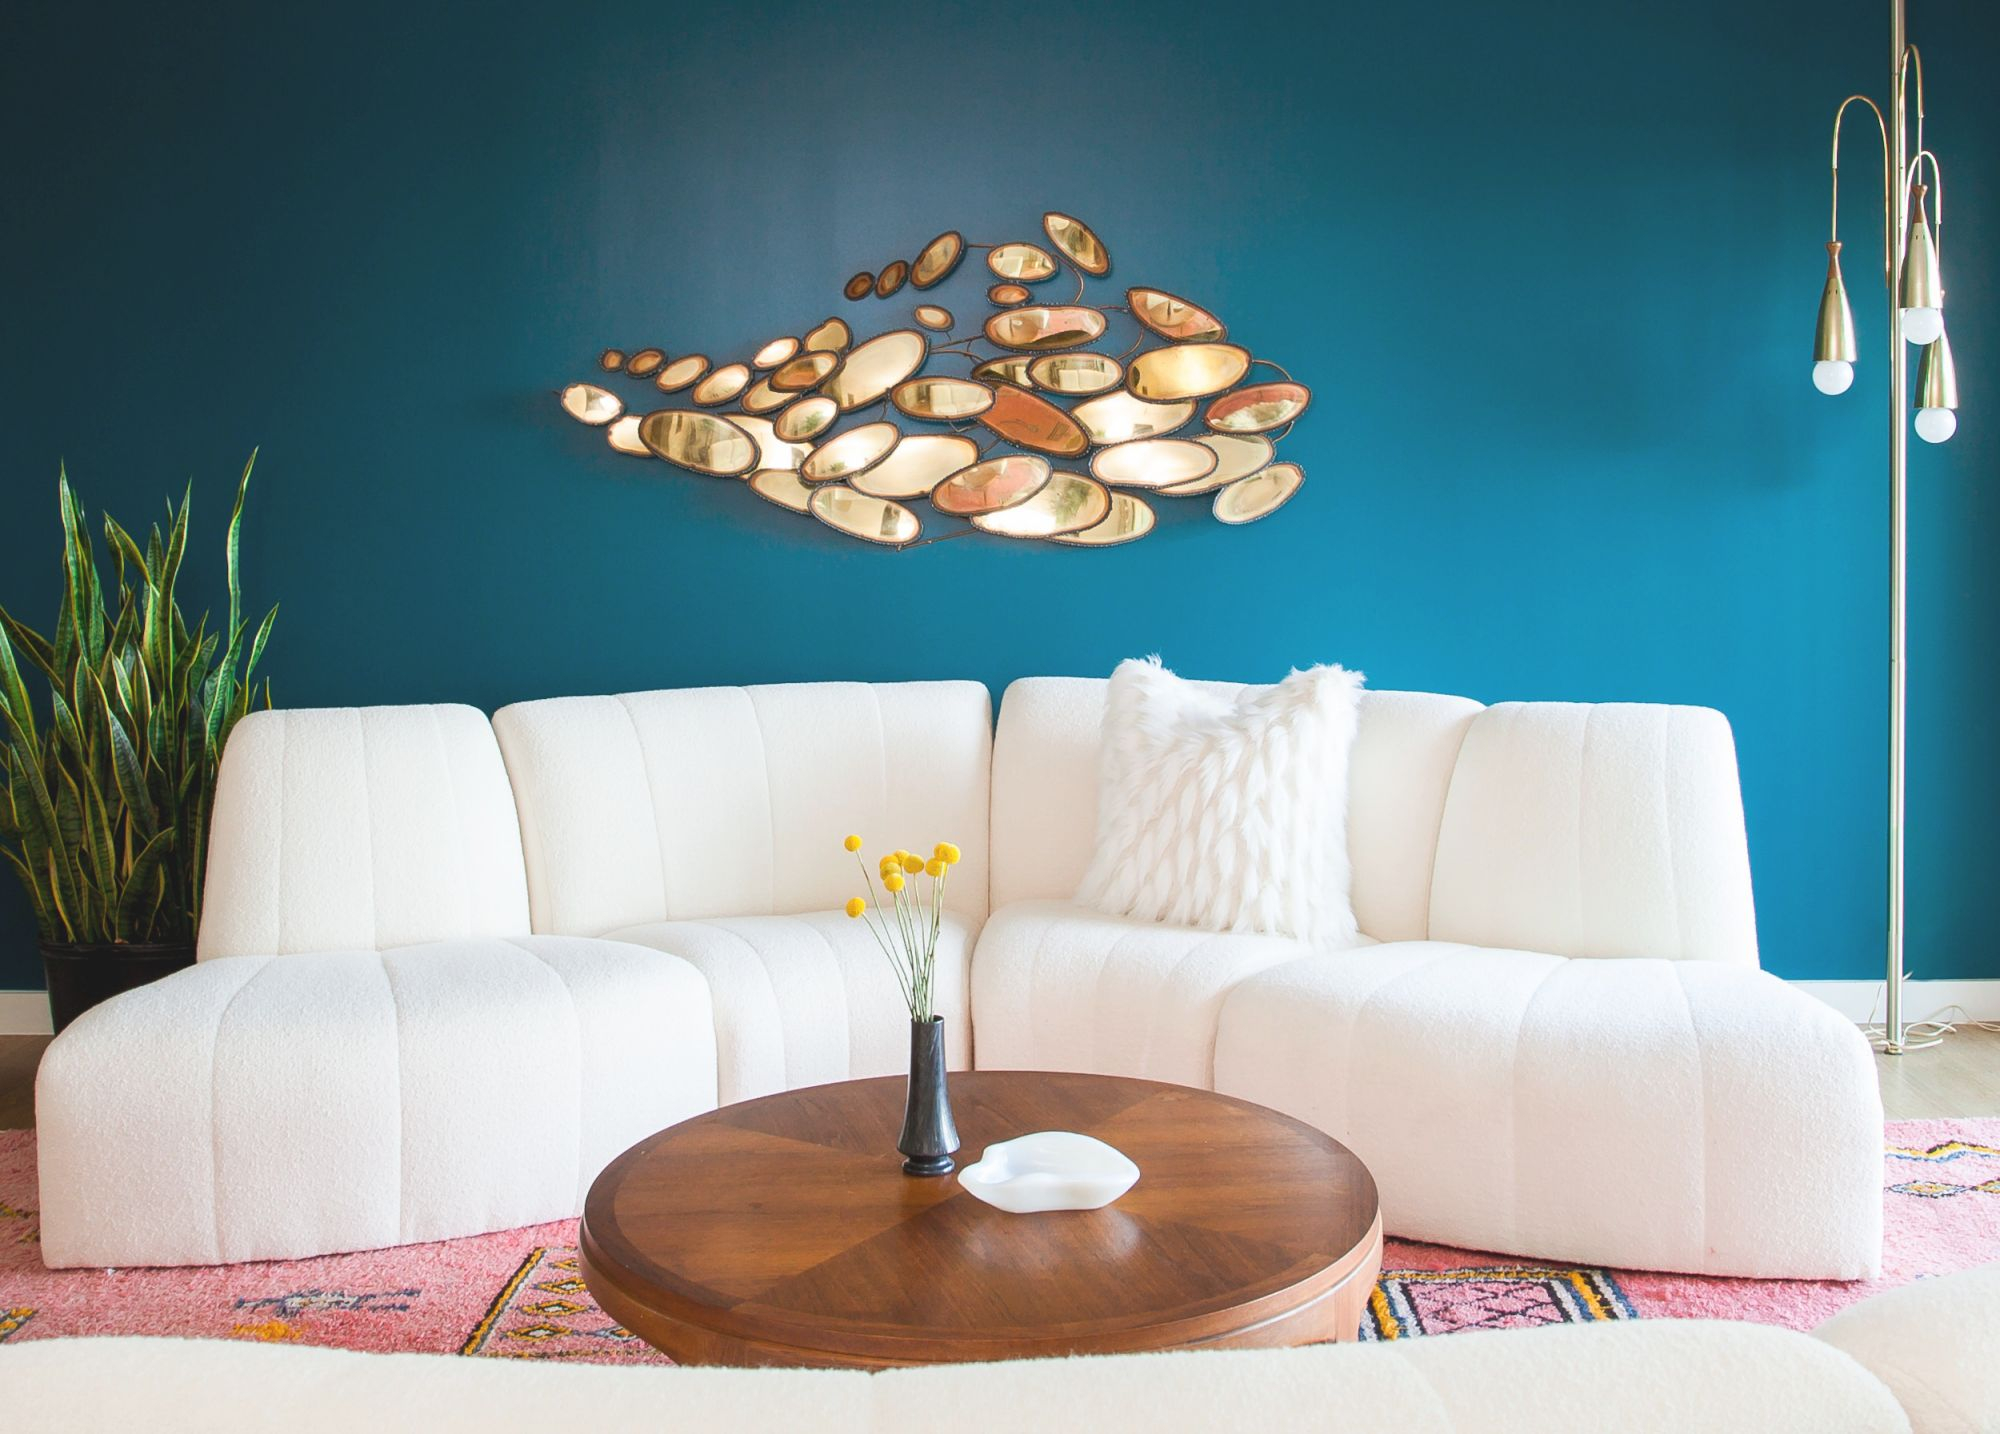 Make Your Small Living Room Chic With These Decorating Ideas in Ideas Of Decorating Small Living Room